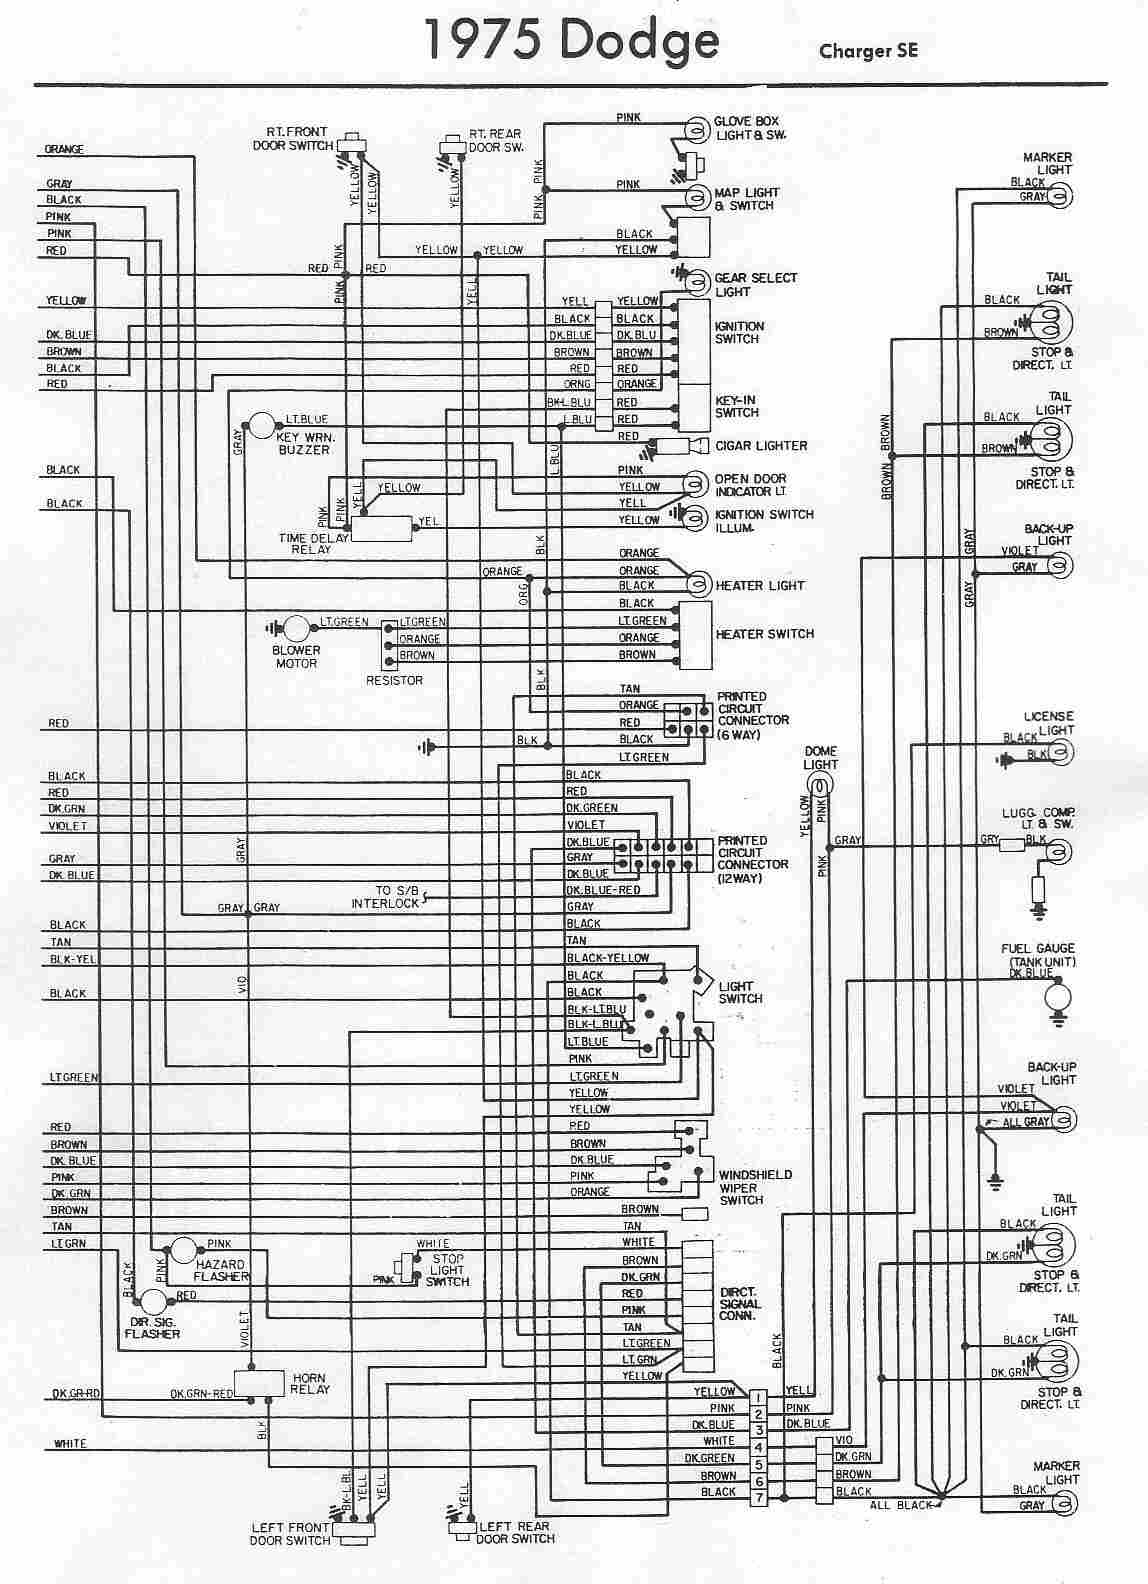 99 Dodge Wiper Motor Wiring Diagram Schematics Valeo Truck Electrical Diagrams Detailed Schematic Rear